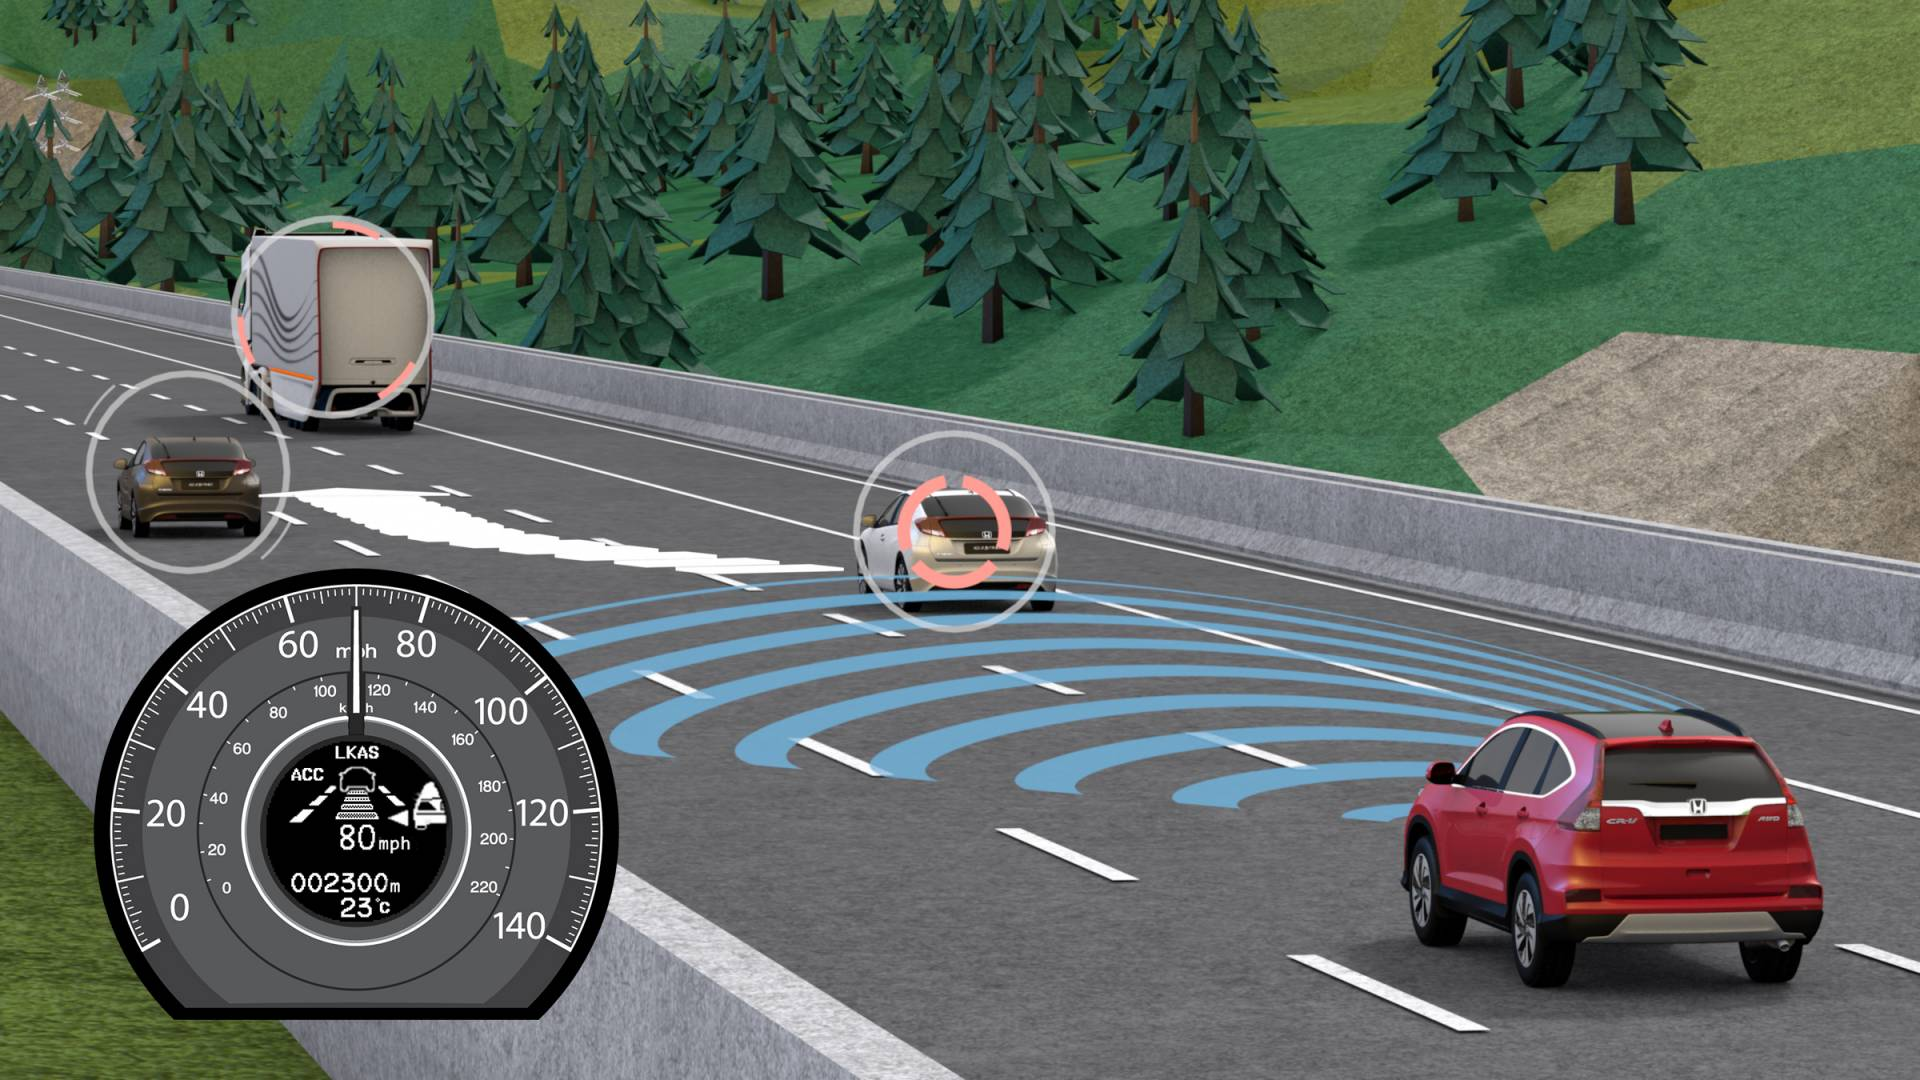 Honda is set to introduce the worlds first predictive safety cruise control system